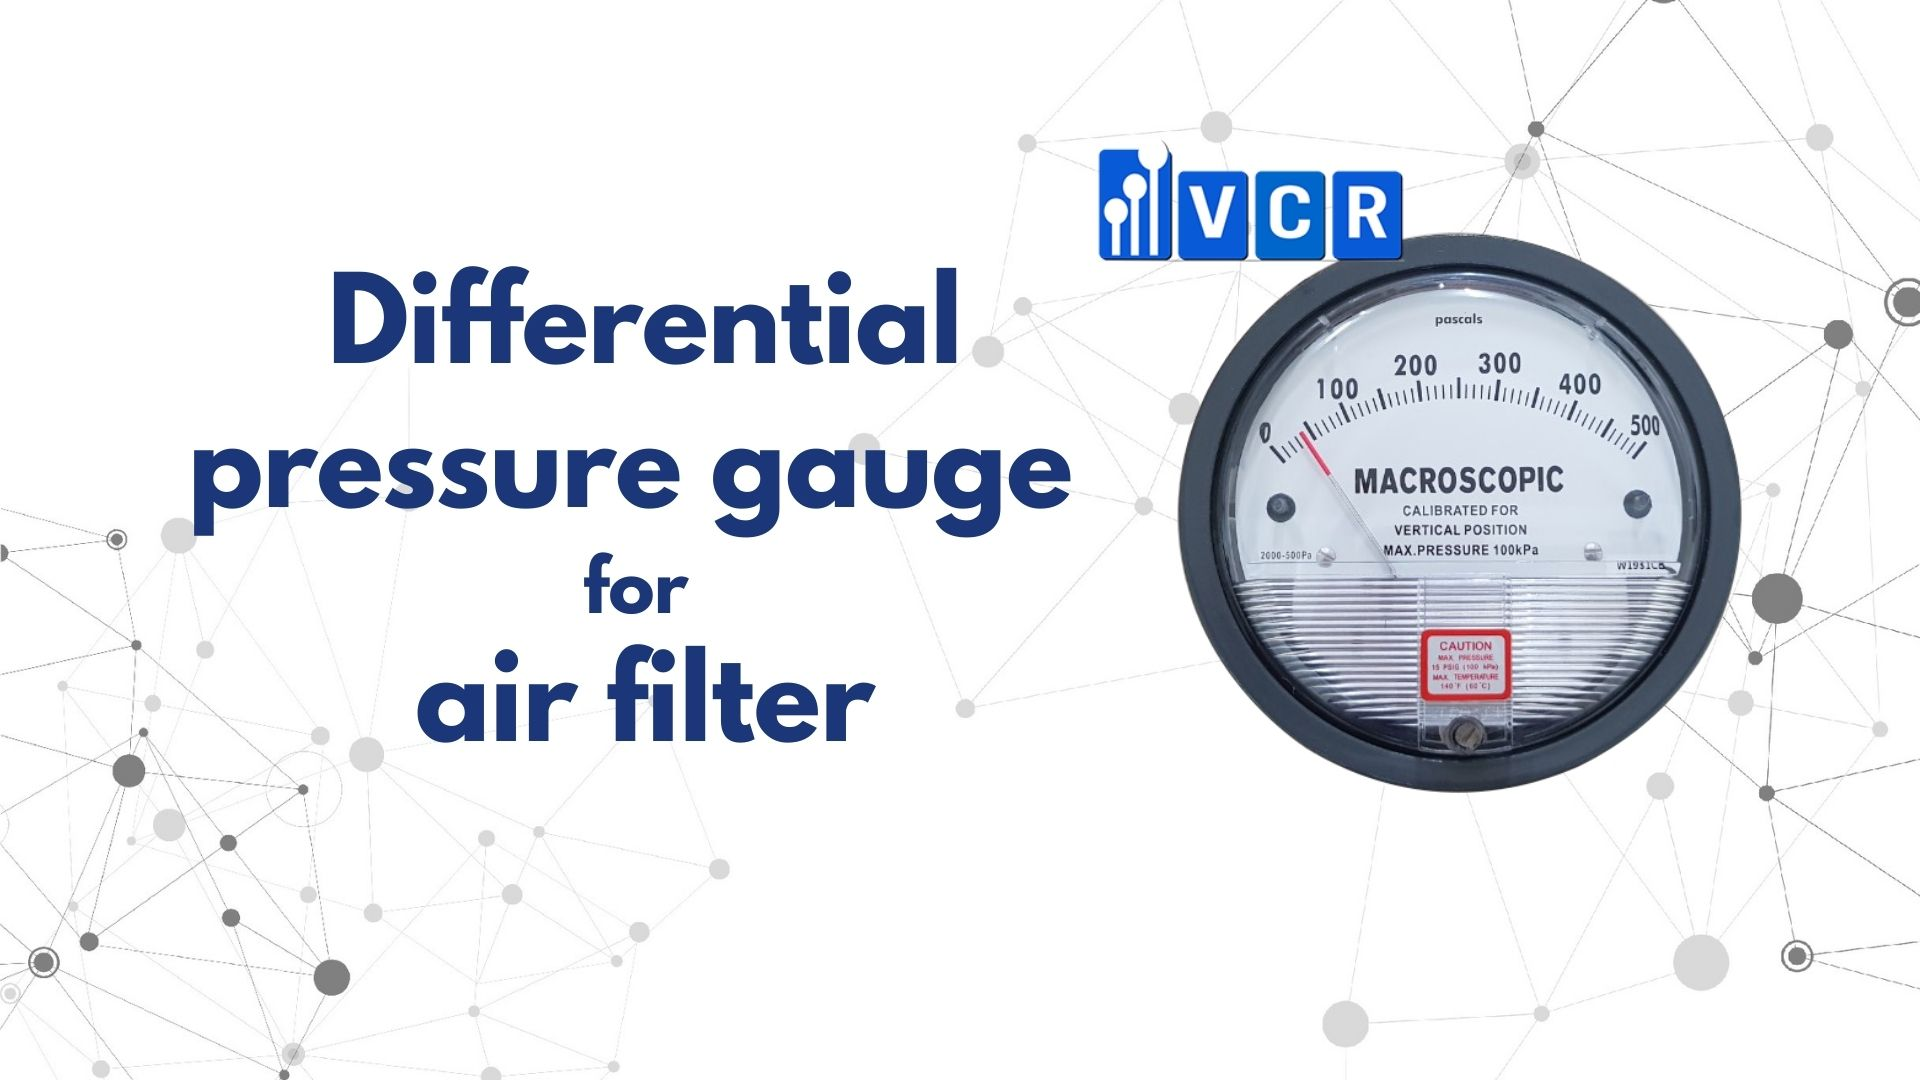 Differential pressure gauge for air filter